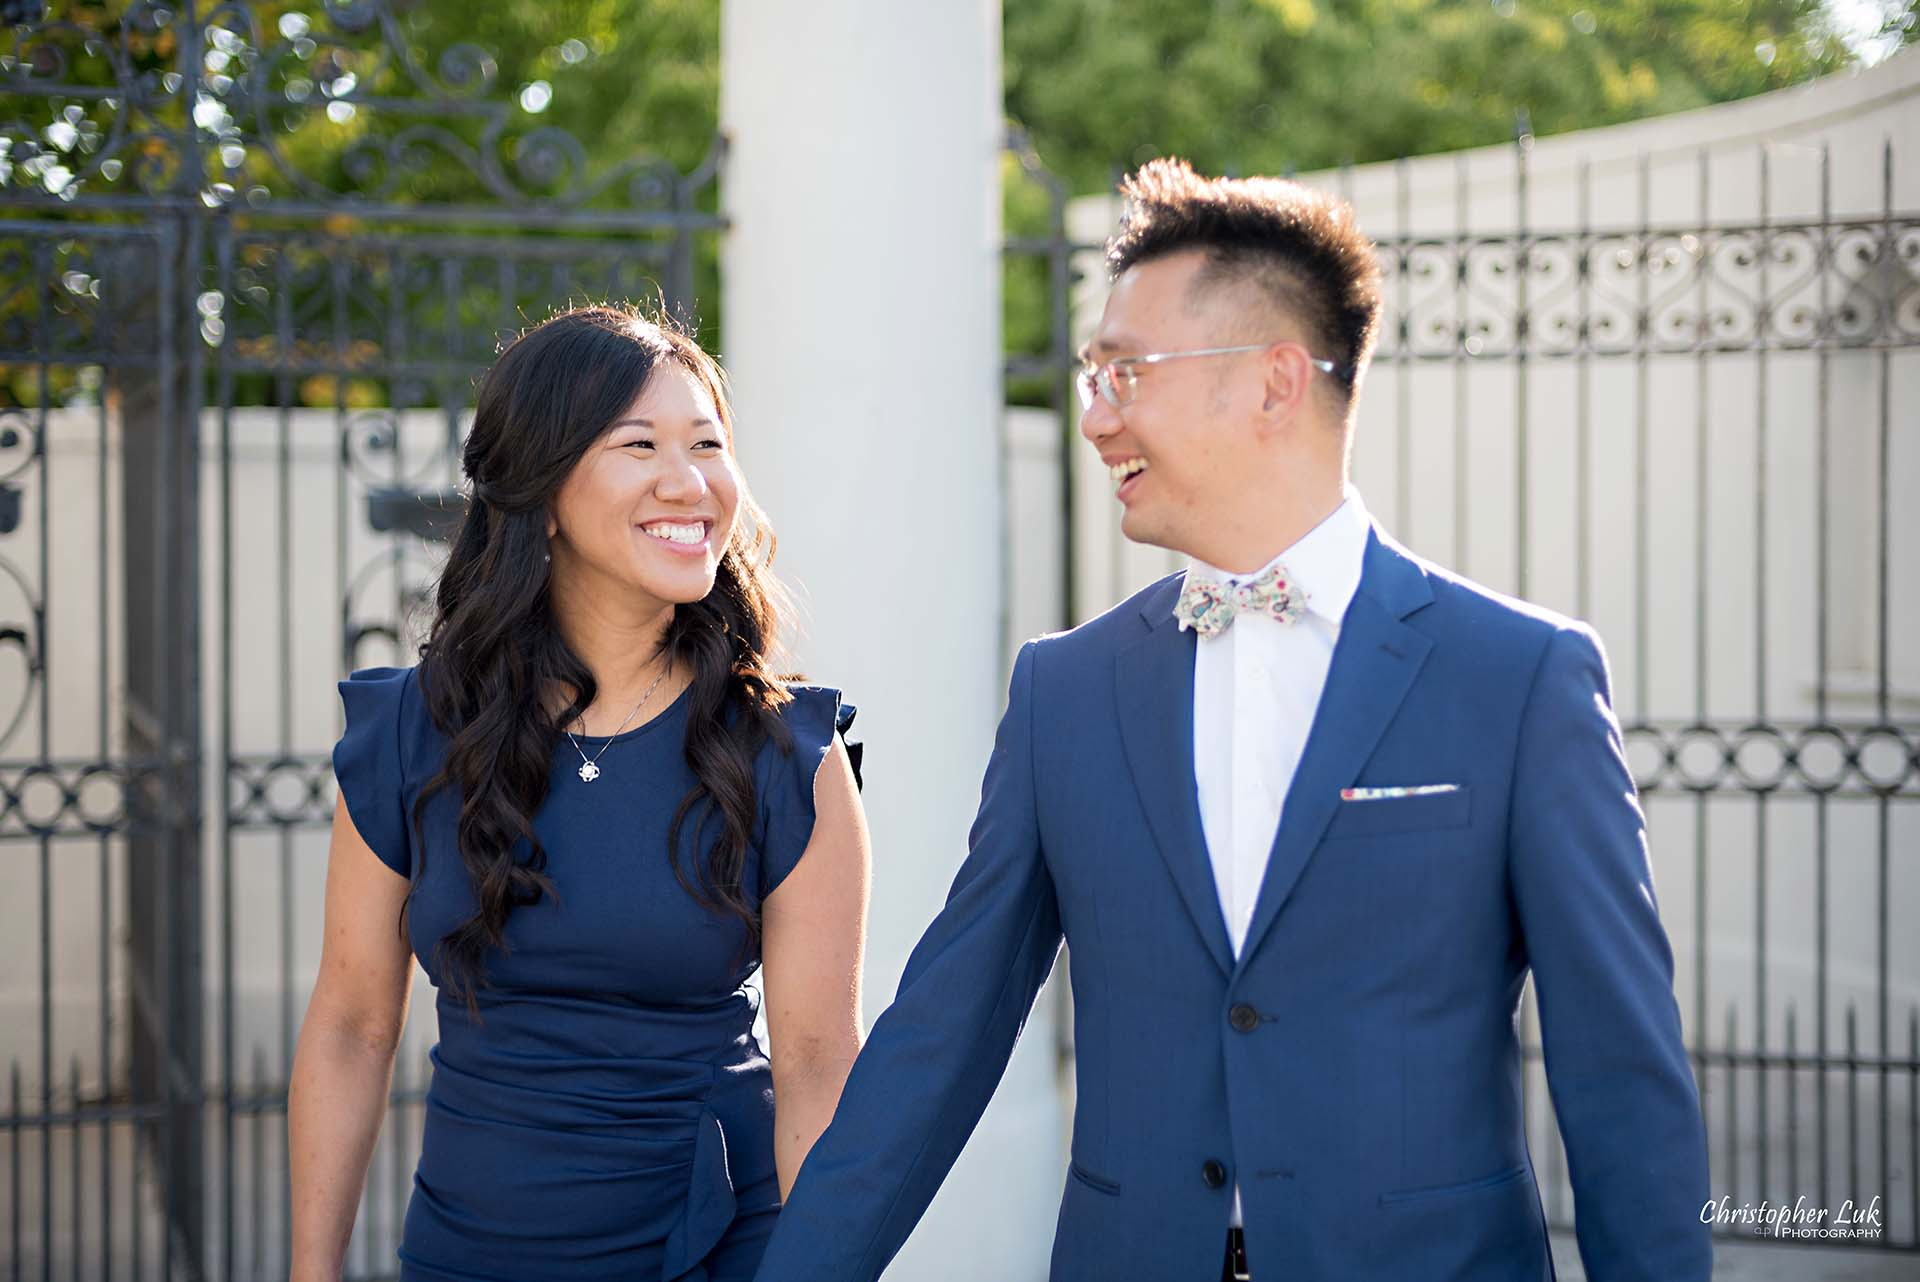 Christopher Luk Toronto Wedding Photographer - Engagement Photography - Sunnyside Pavilion Park Beach Boardwalk Toronto - Bride and Groom Natural Candid Photojournalistic Walking Smile